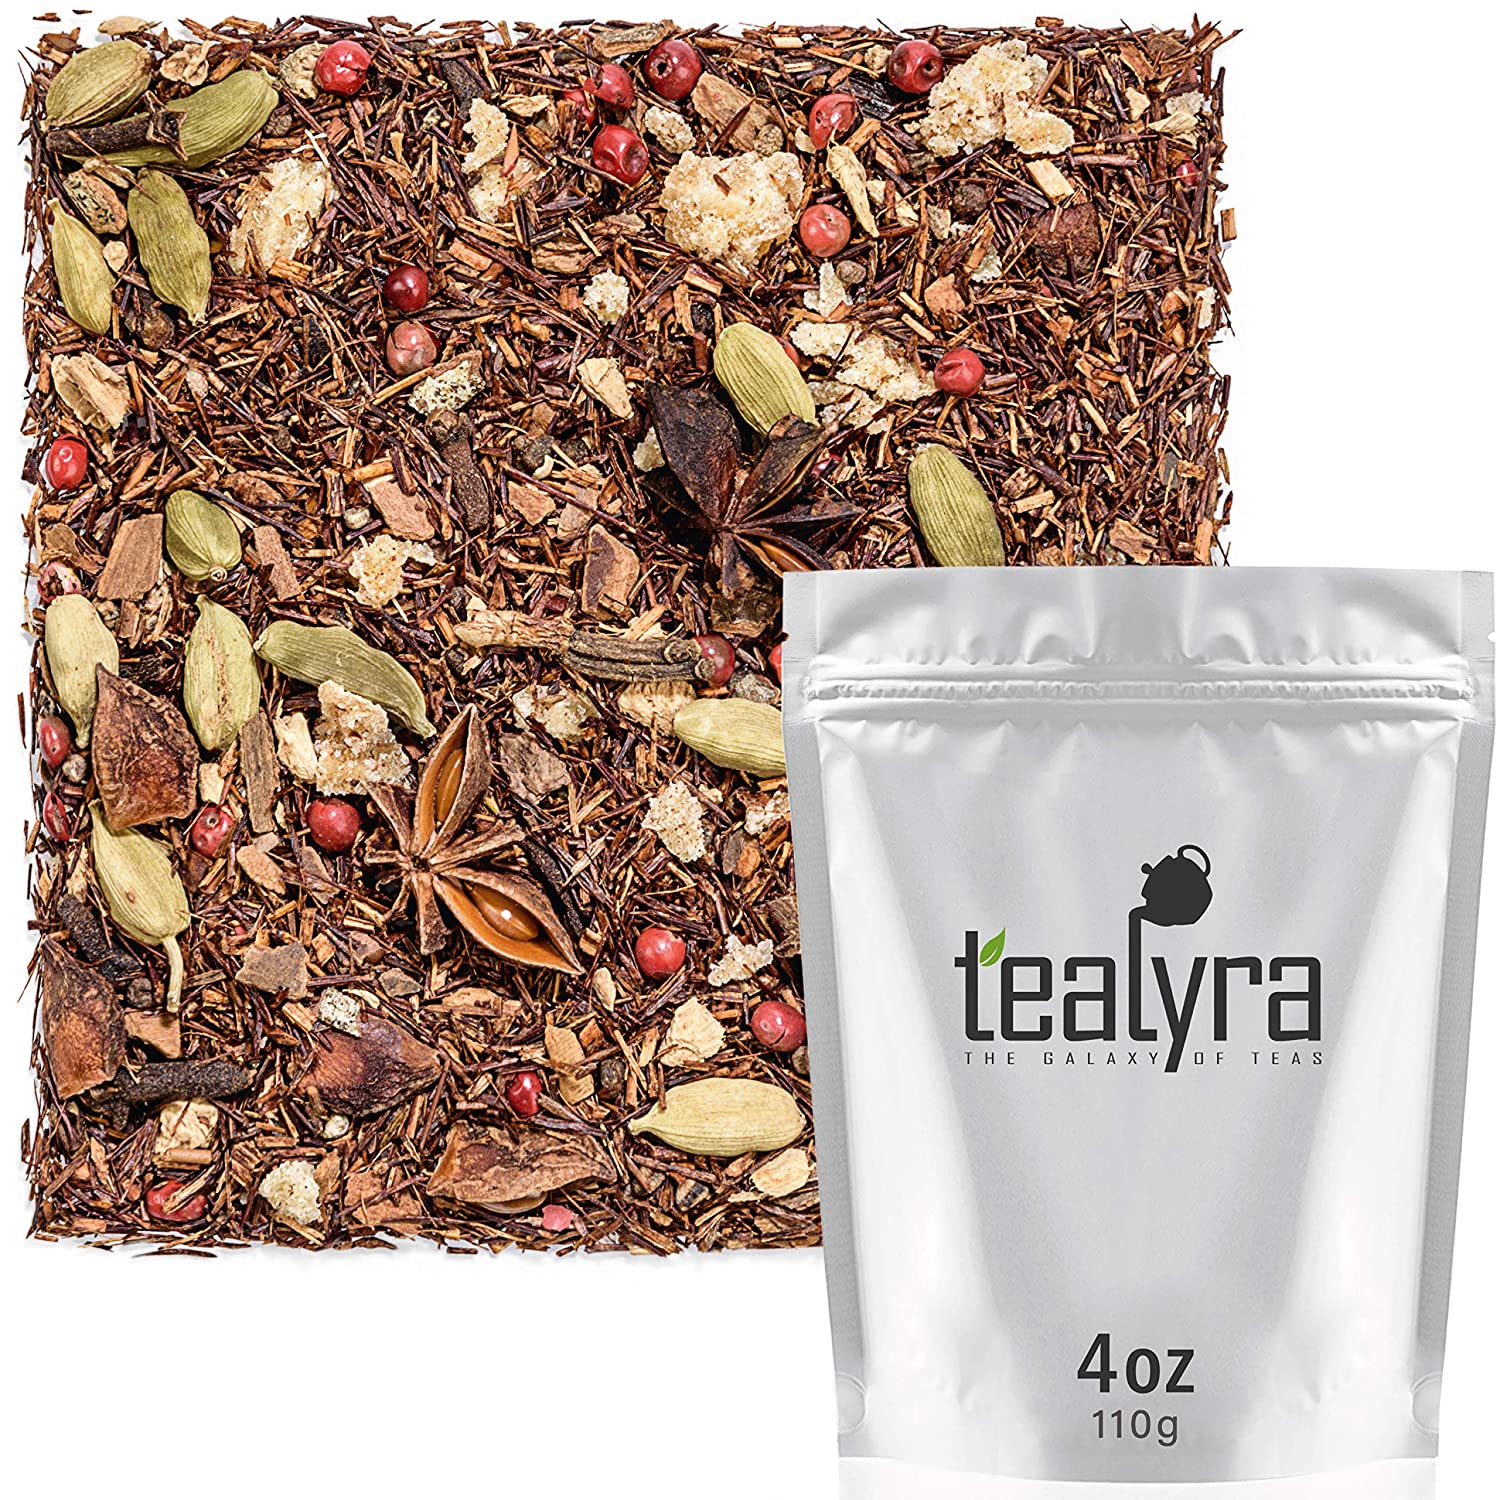 All Natural Red Bush 4-ounce Moroccan Orange Rooibos Caffeine Free Cinnamon Herbal Loose Leaf Tea Ginger Fennel Tealyra 112g Vitamins and Antioxidants Rich